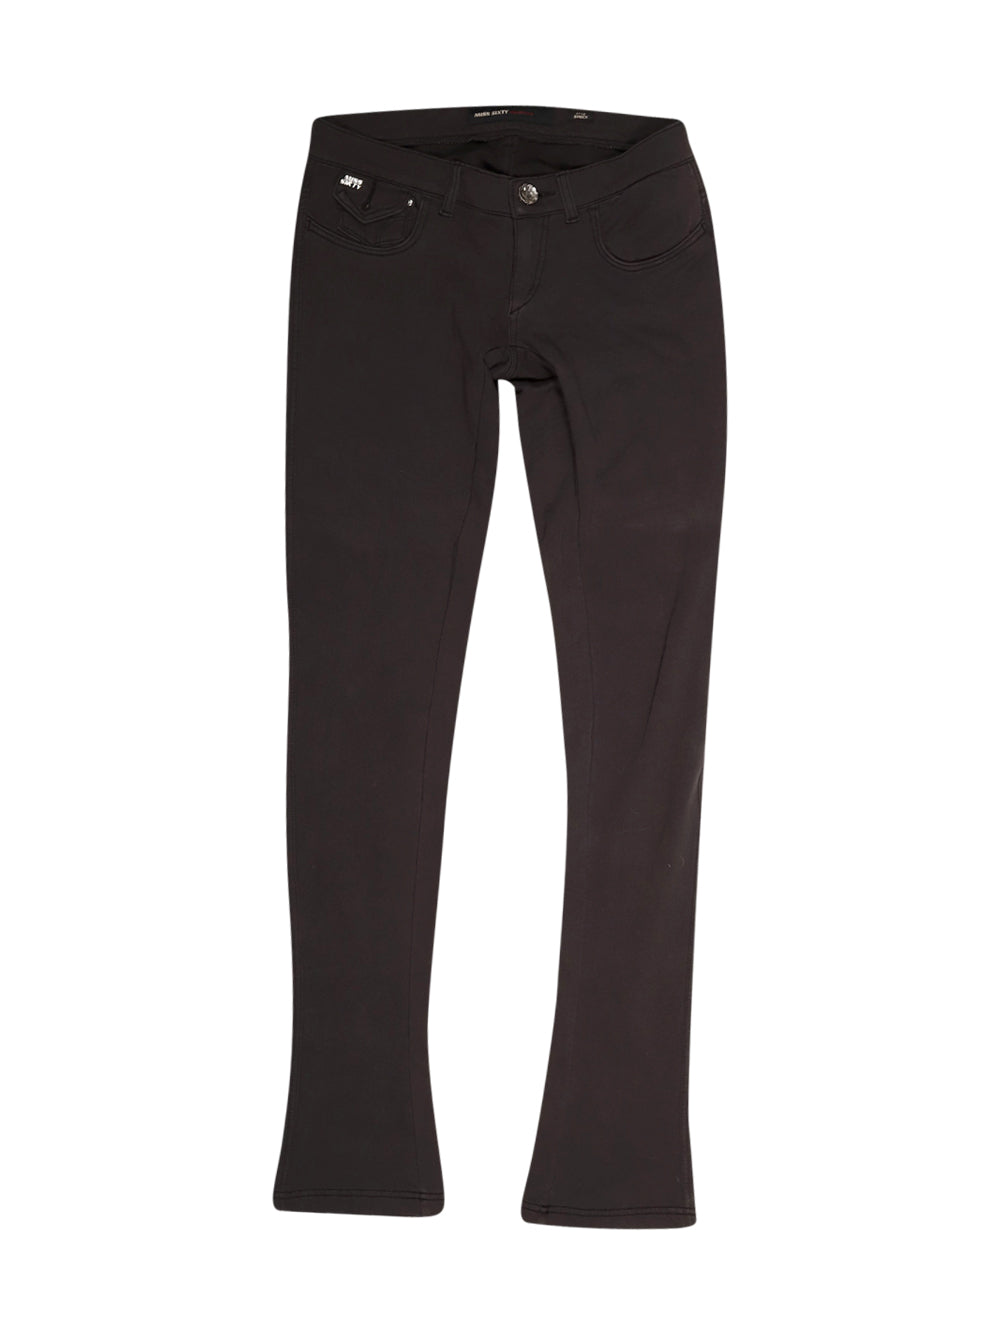 Front photo of Preloved Miss Sixty Black Woman's trousers - size 14/XL